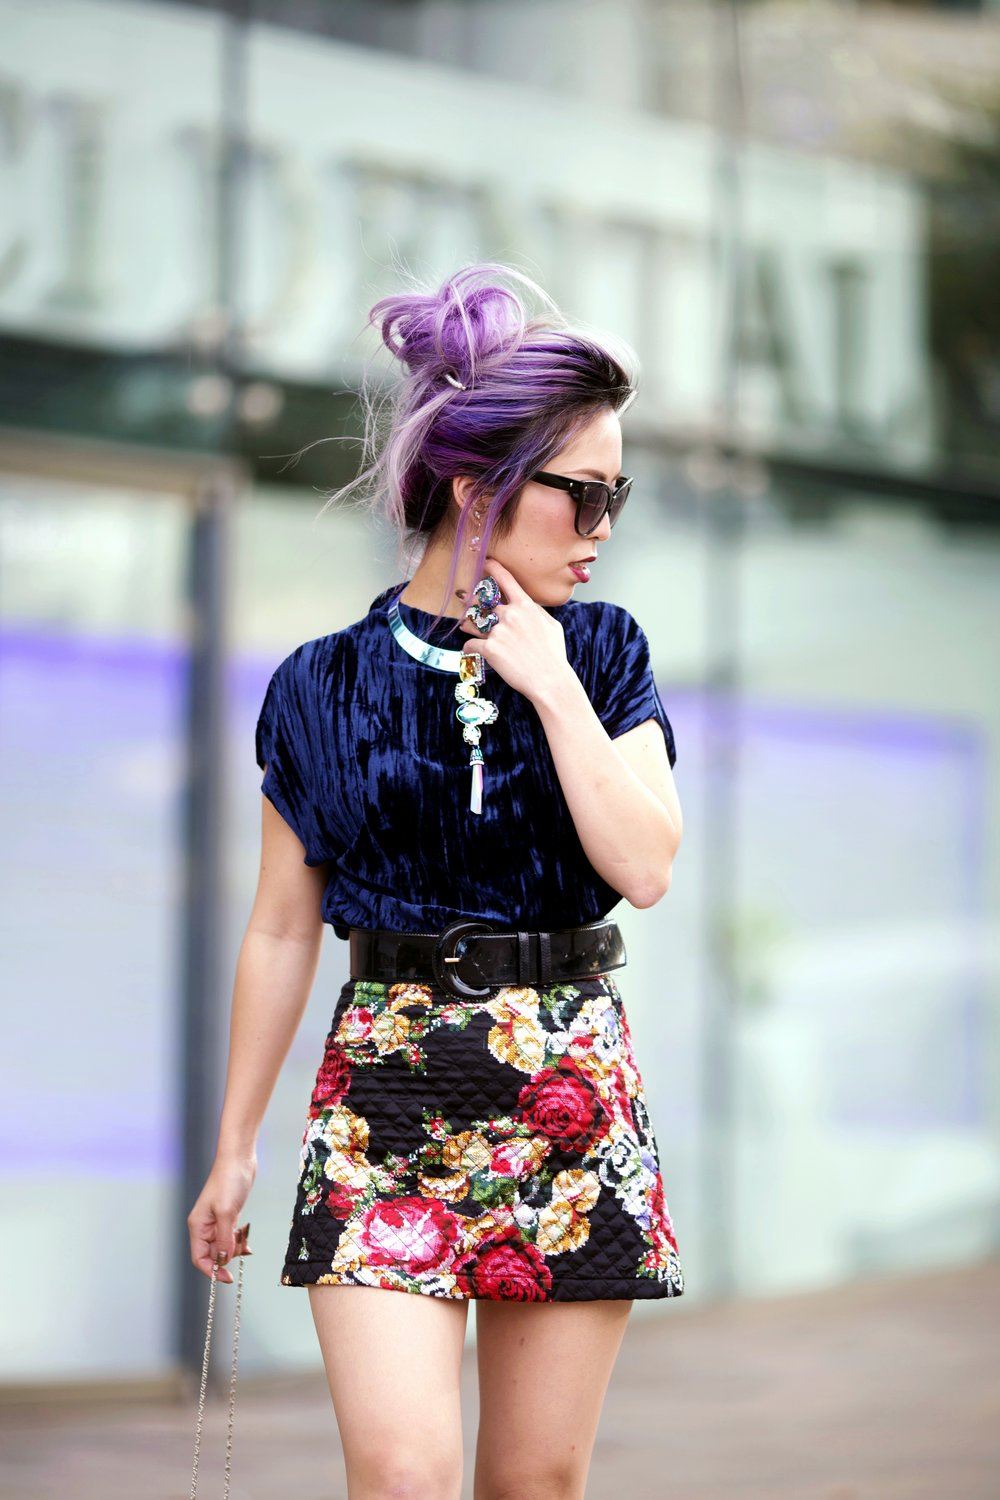 ZARA Blue Velvet Top_Forever 21 Floral Print Mini Skirt_Mango Patent Belt_Kate Spade Sheer Ankle Socks_Qupid Silver Pumps_Aldo Cateye Sunglasses_Swarovski Fluorescent Necklace & Fluorescent Ring_Aika's Love Closet_Seattle Fashion Blogger_Japanese_Lavender Hair_Mermaid Hair 5